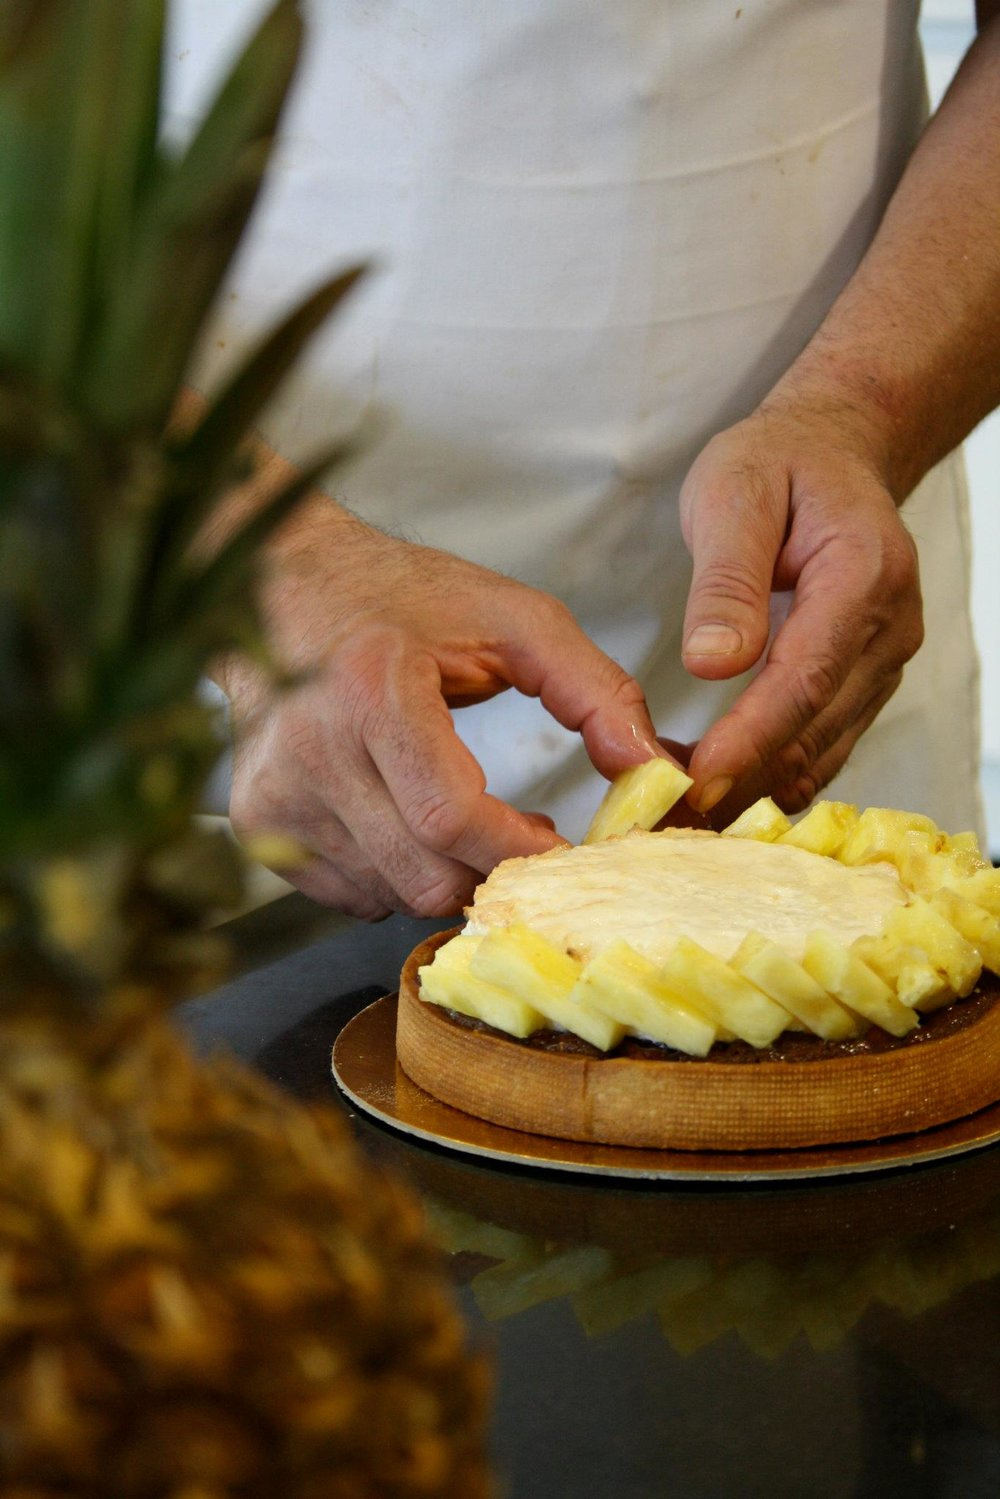 3 Day Class - *Qualifies for 10 Week Certificate ProgramIn this course of study students will be exposed to foundational recipes, techniques and concepts of traditional cakes and tarts, as well as their modern interpretation and evolution. Utilizing the core skills of Baking Science students will begin to refine core pastry skills and become aware of critical components that comprise a solid pastry foundation. Recipes learned: Lemon Meringue Tart, Almond Pear Tart, Fruit Season Fresh Rustic Tart, Black Forest, Millefeuilles (Napoléon), ST. Honoré, Rum Baba, Milk Chocolate Royal Praline....